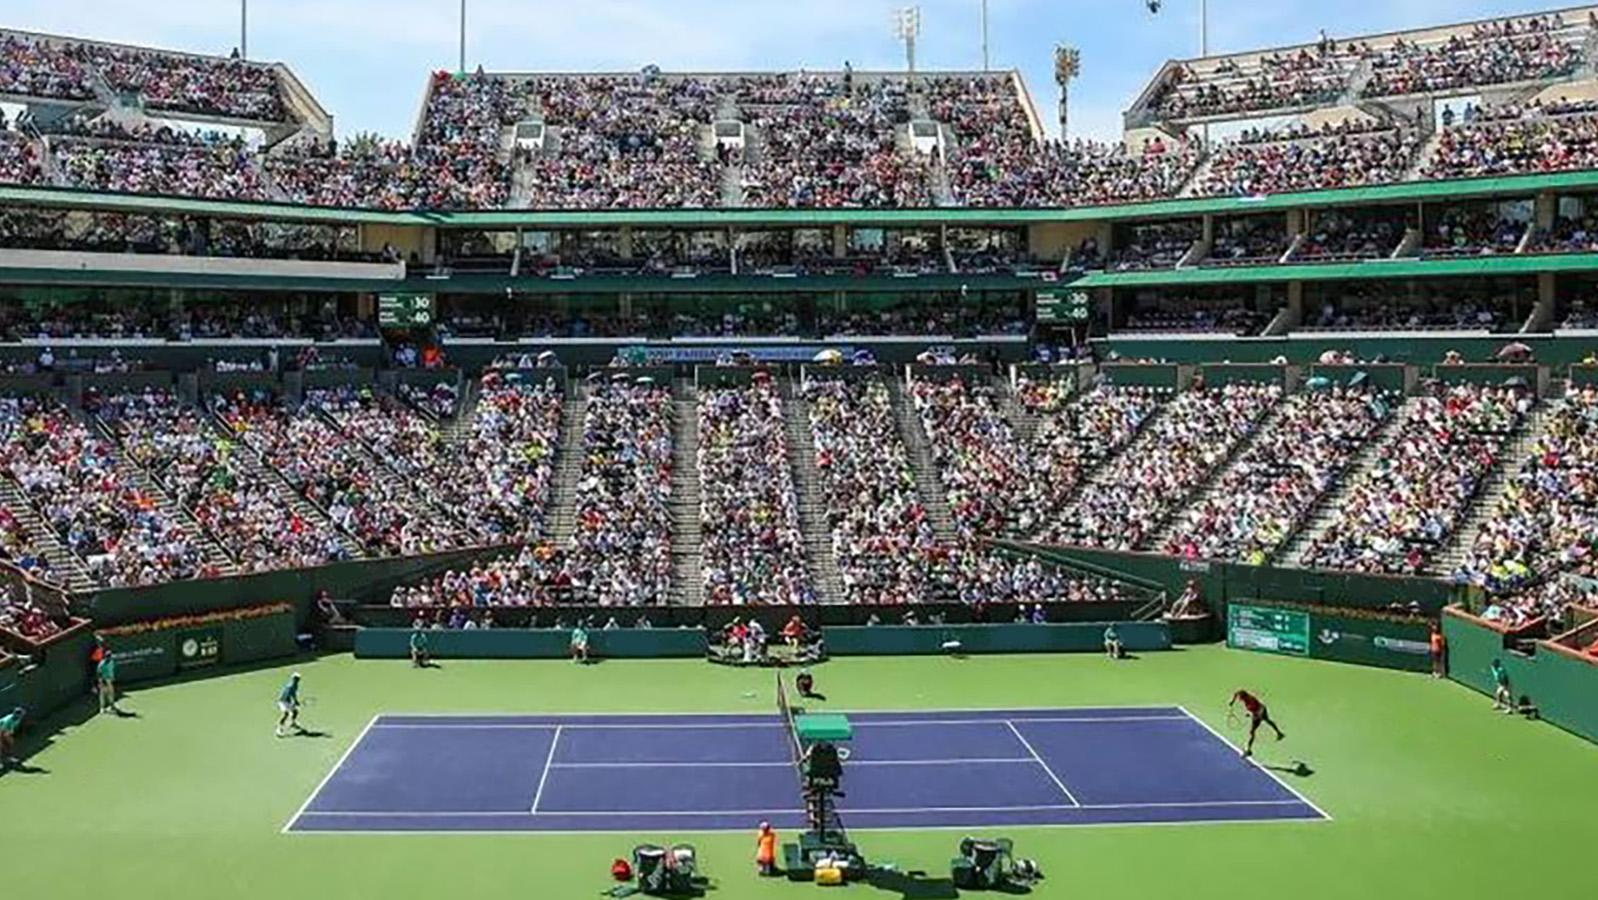 BNP Paribas Open - Session 14